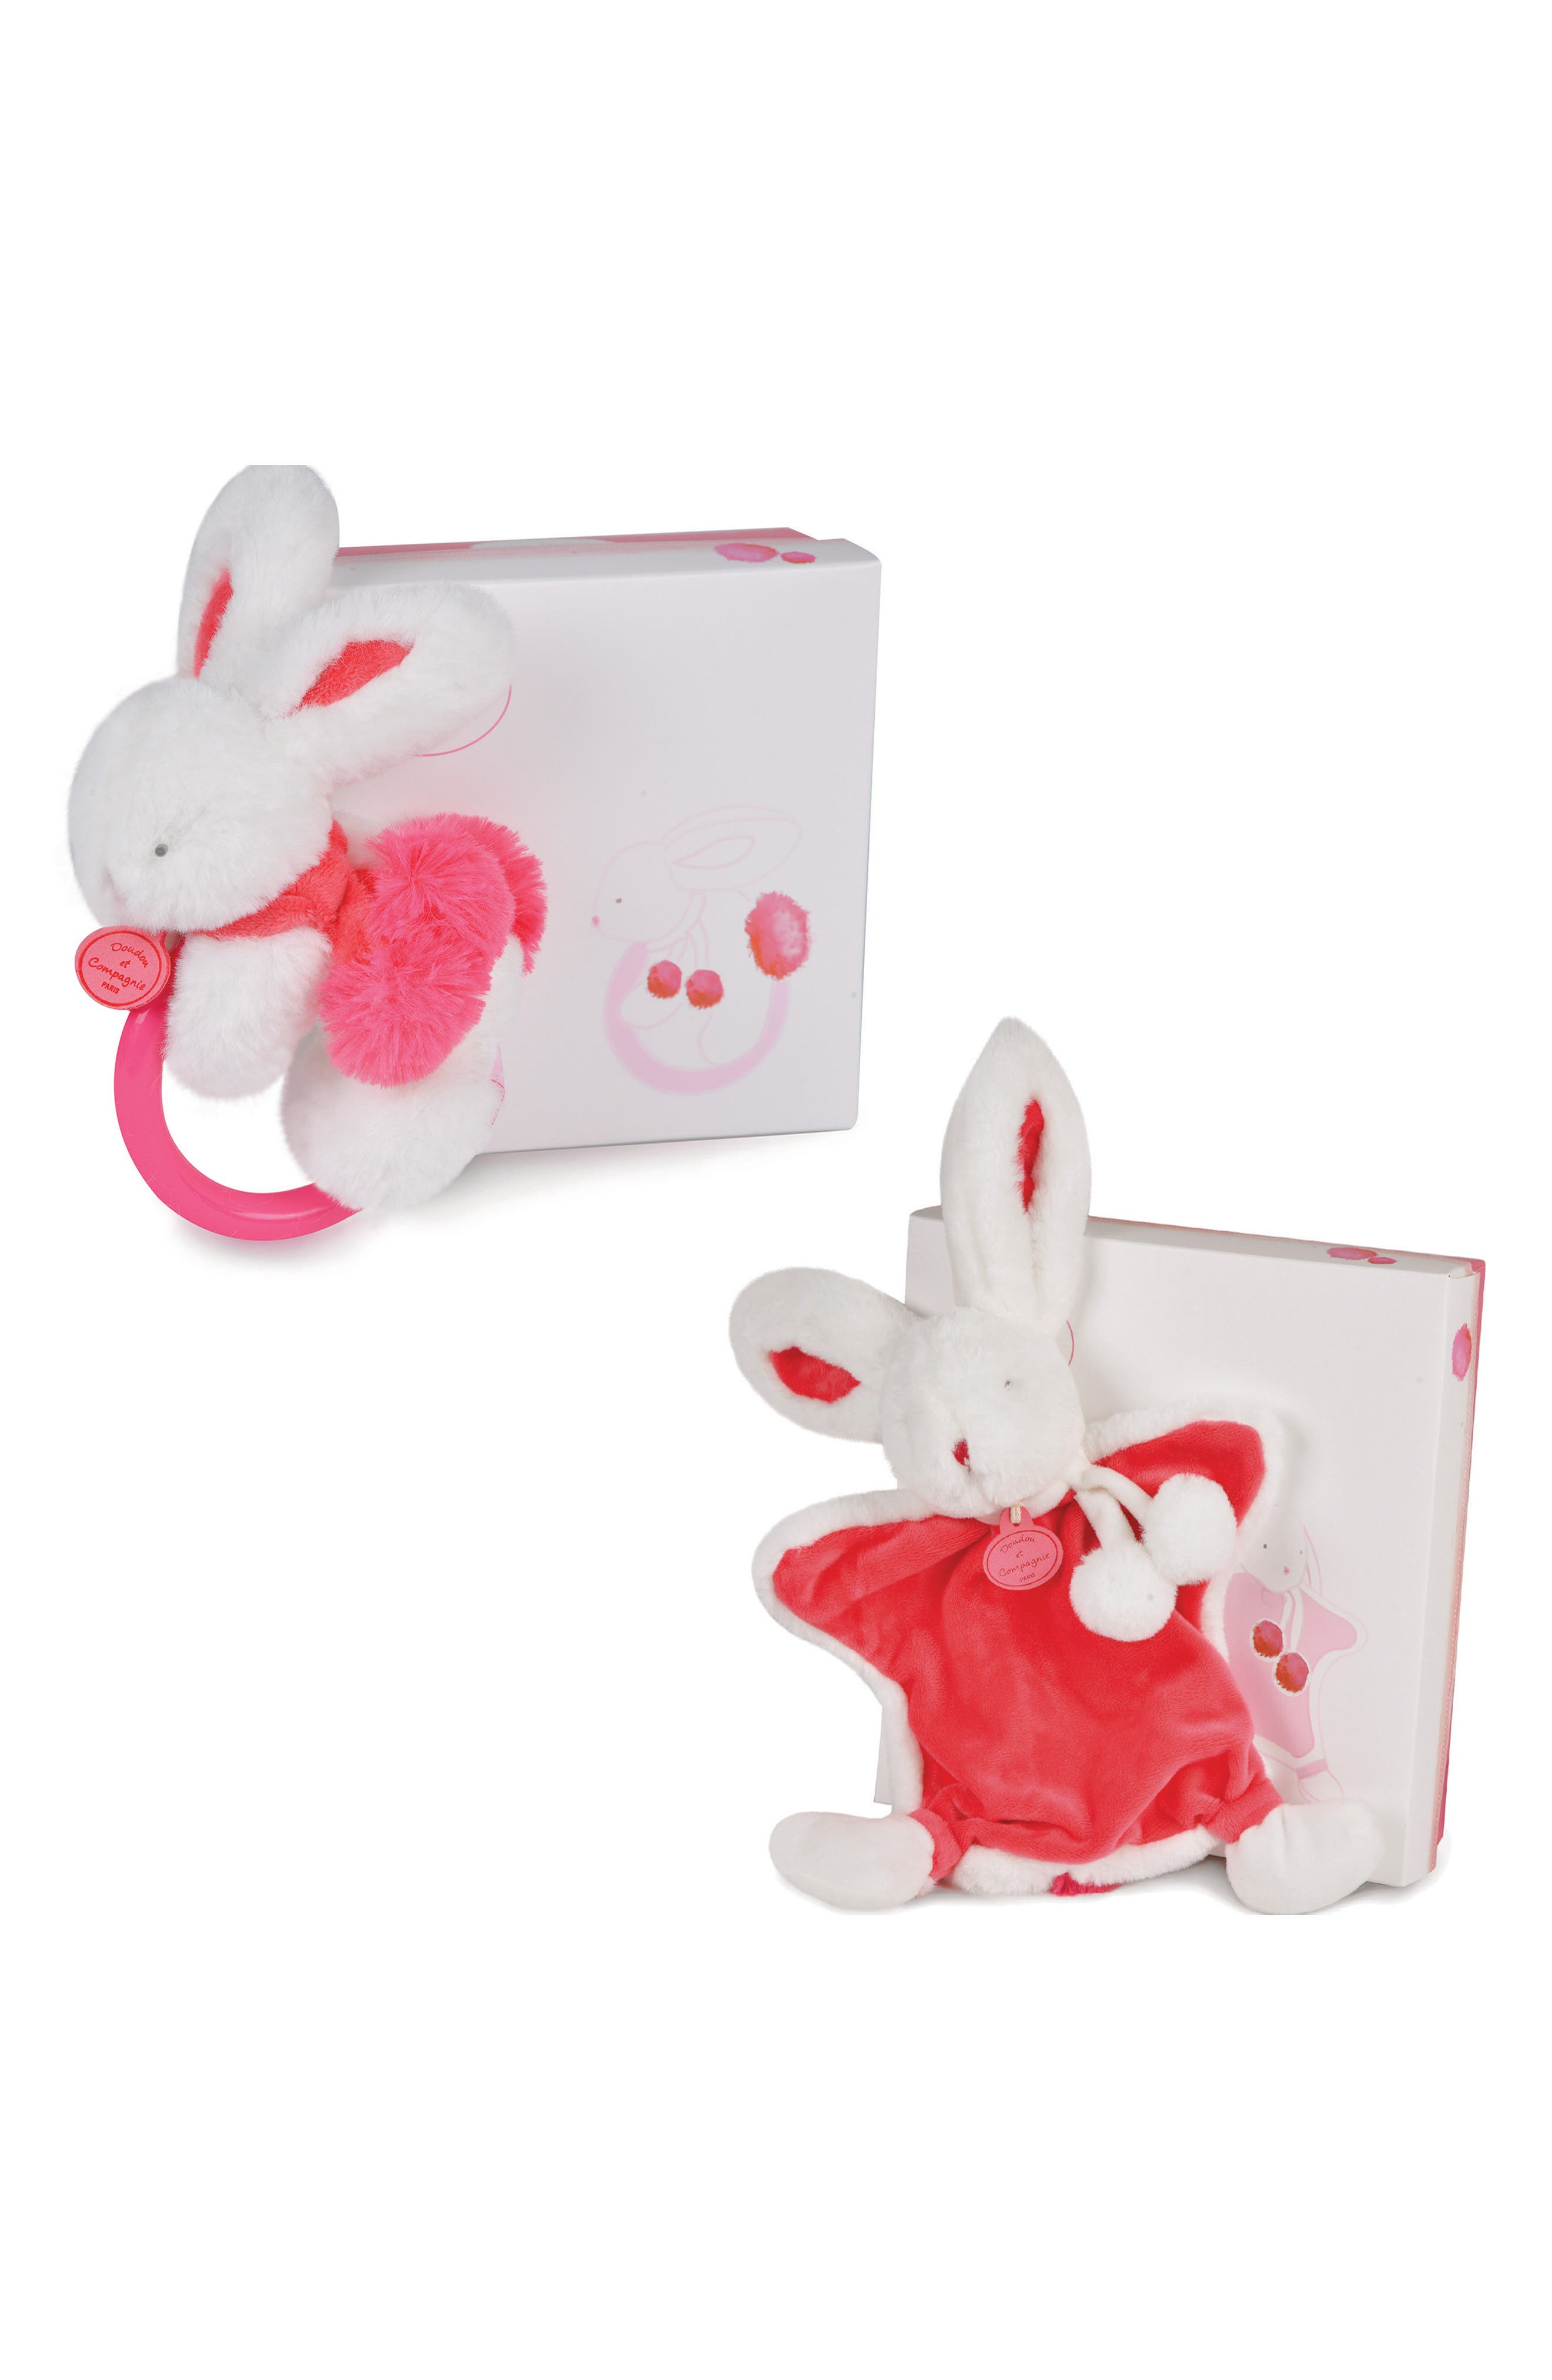 Strawberry Pink Bunny Rattle & Lovie Blanket Gift Set,                             Main thumbnail 1, color,                             Strawberry Pink